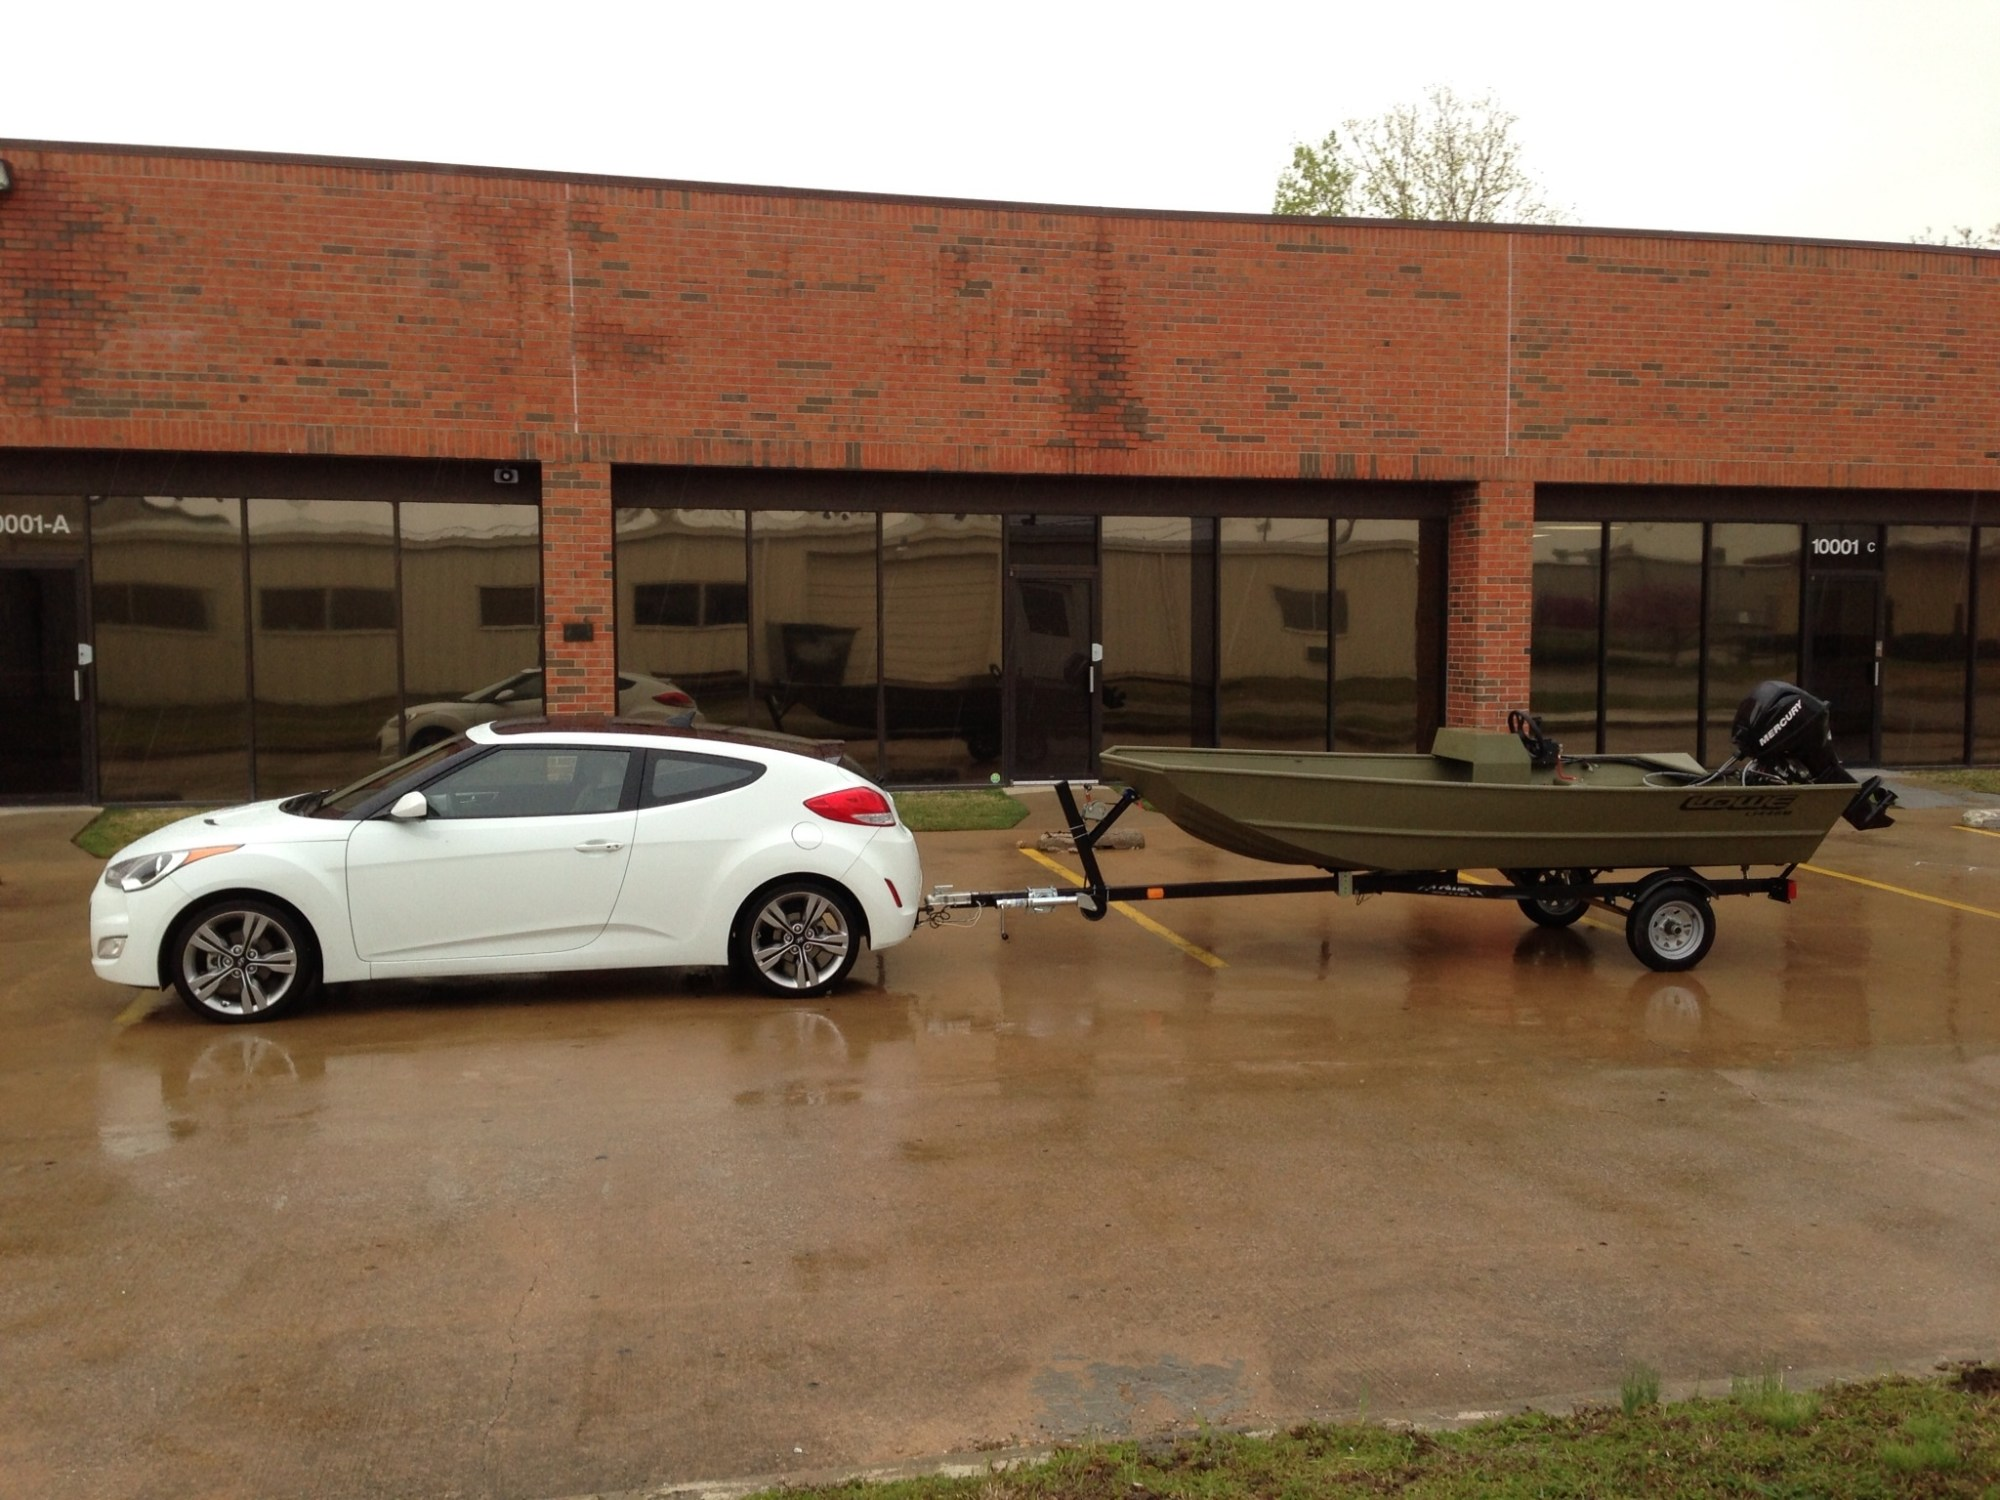 hight resolution of image jpg veloster as a tow vehicle image jpg